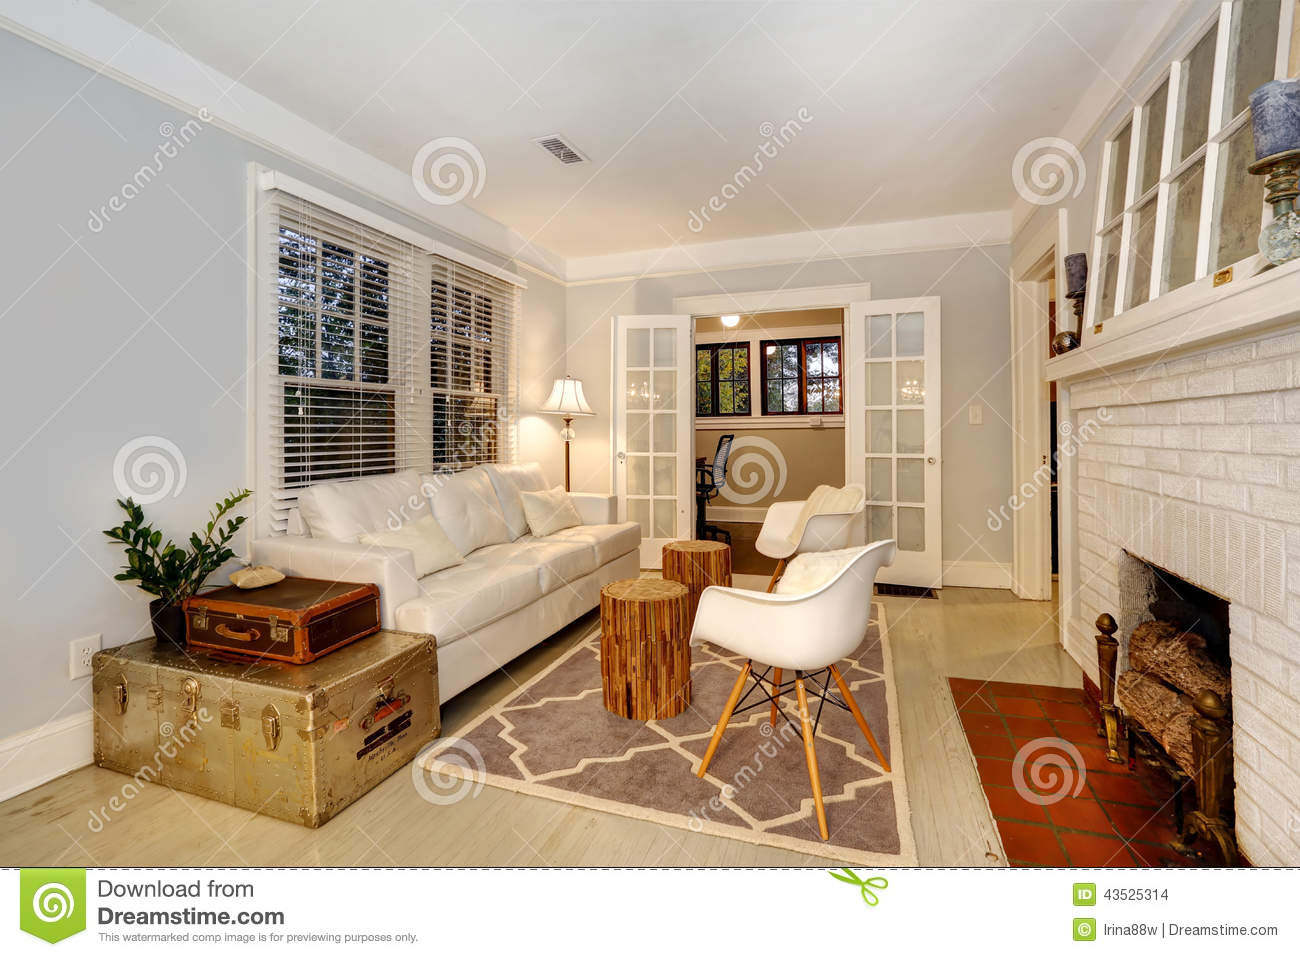 Living Room Wiht Fireplace Antique Chests And Modern Sofa And C Stock Photo